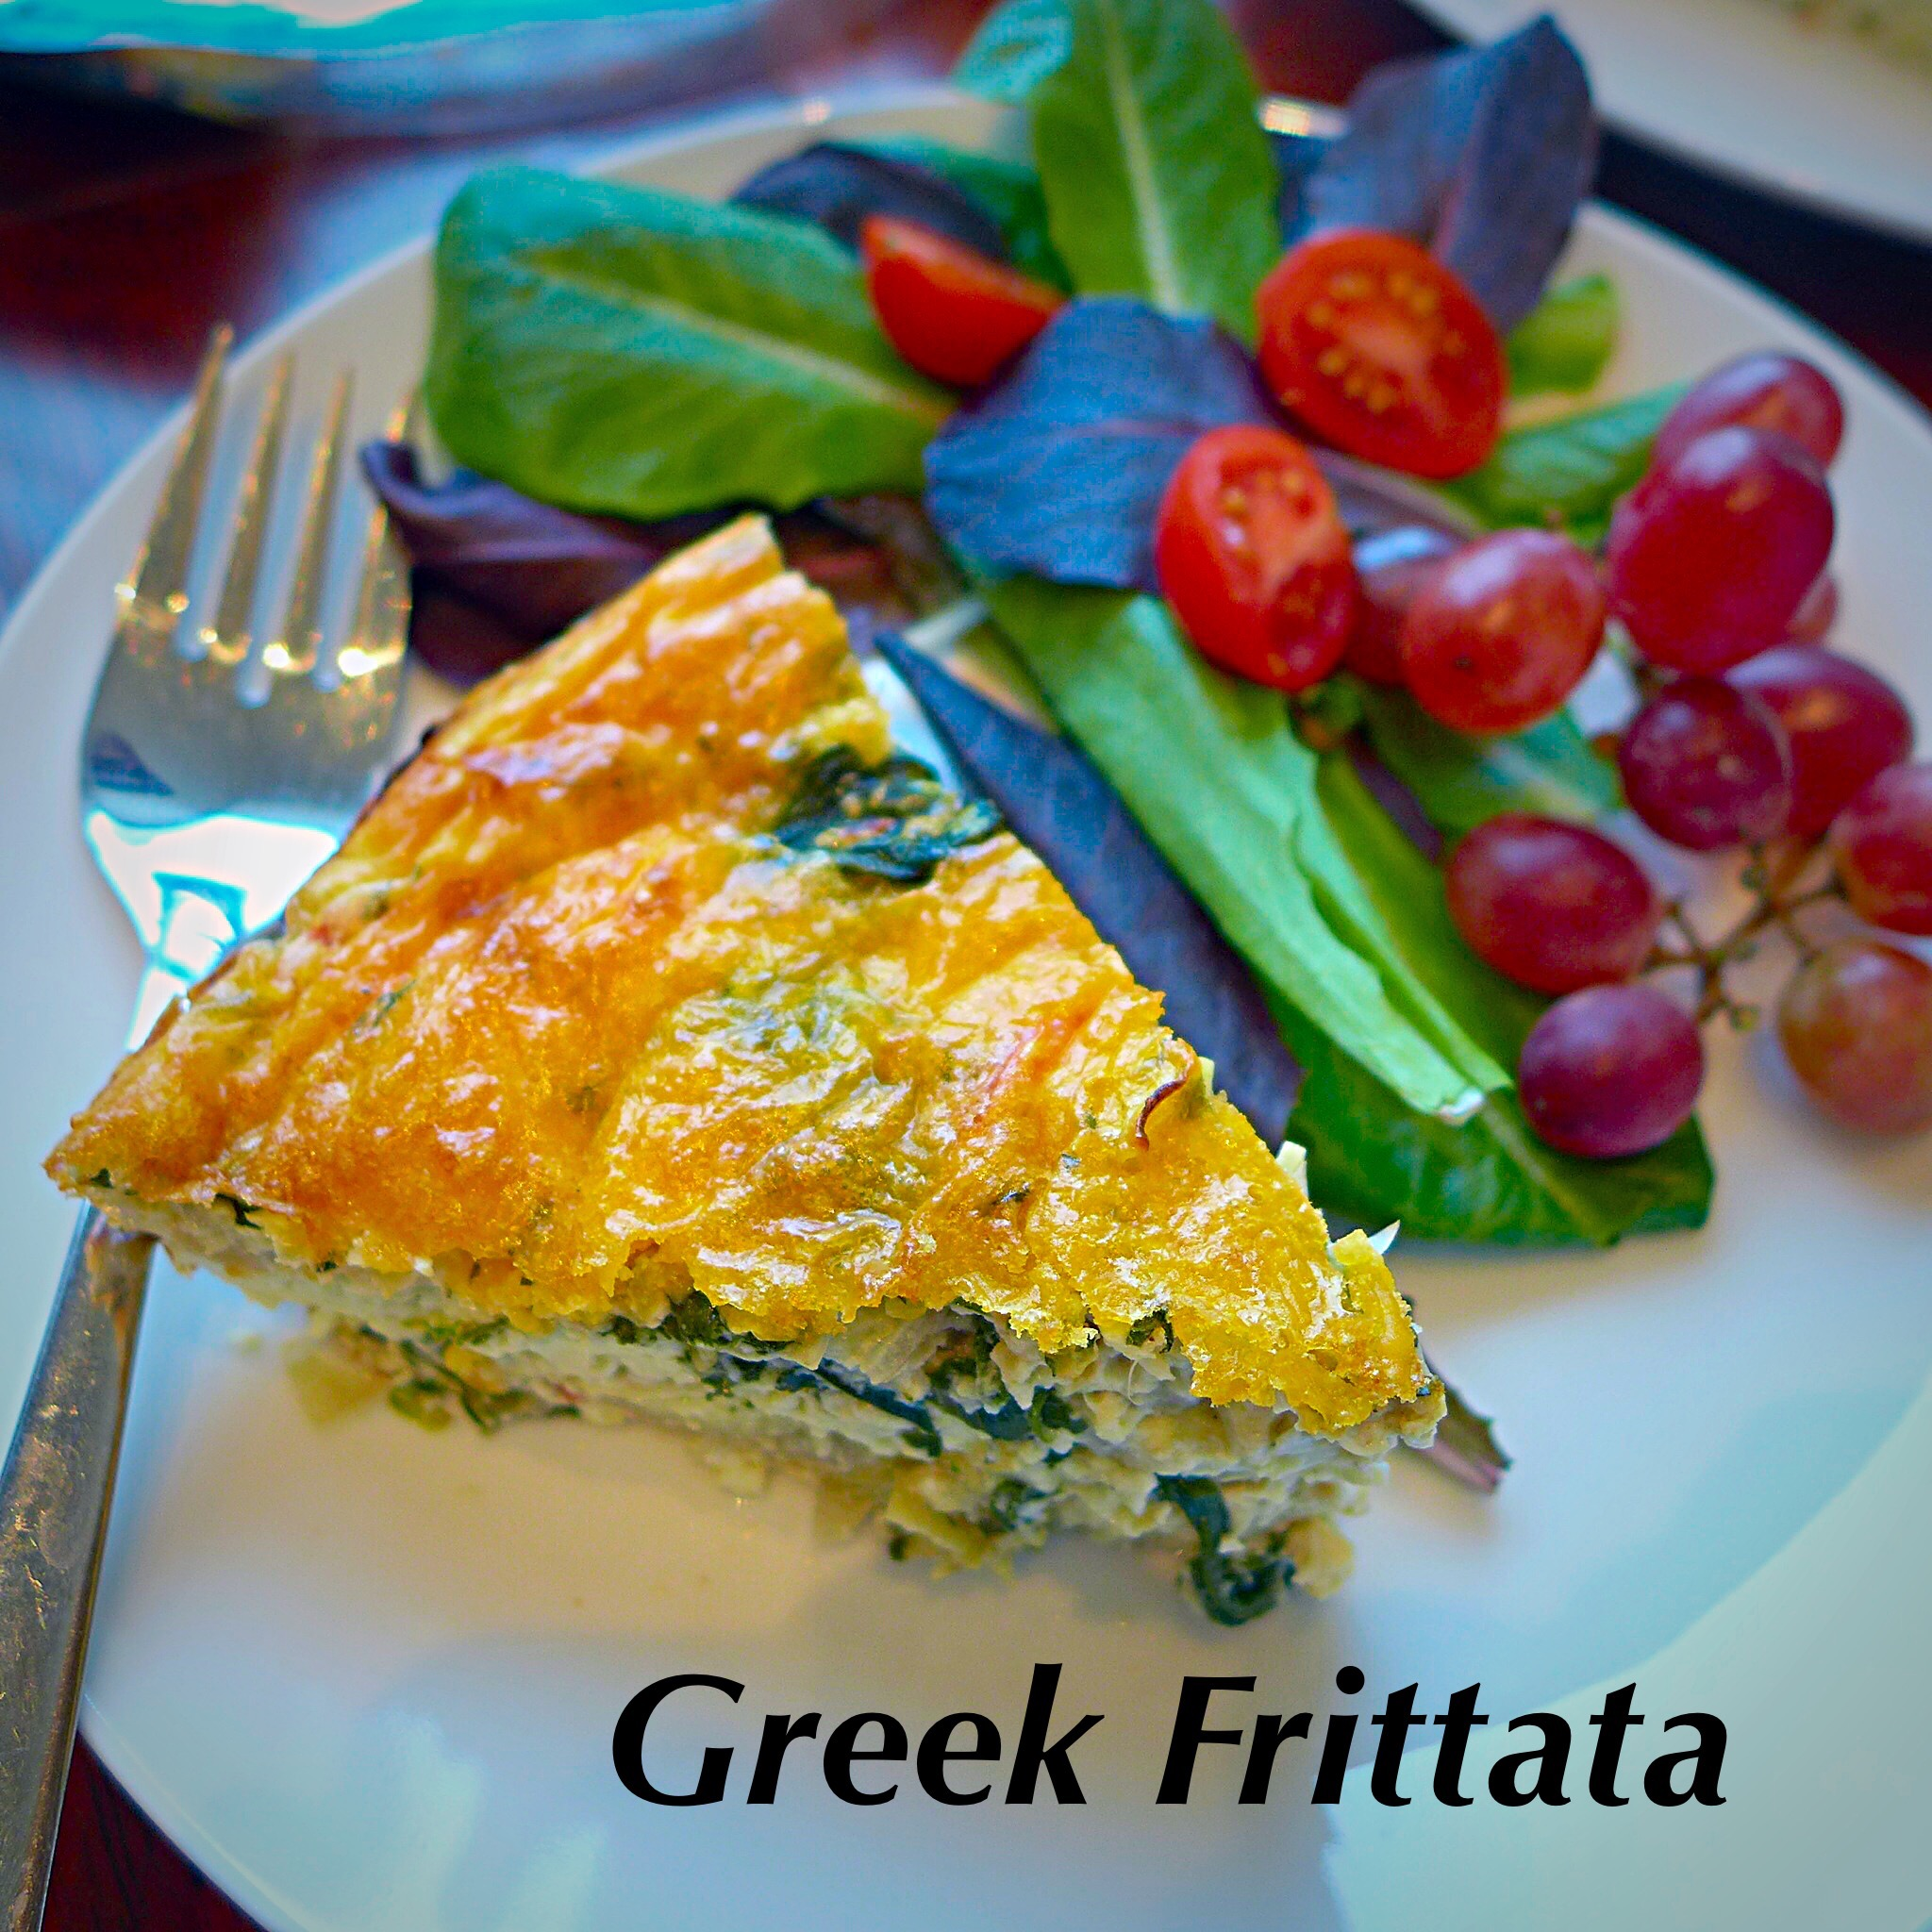 Greek Frittata, the #1 most popular side on diginwithdana!